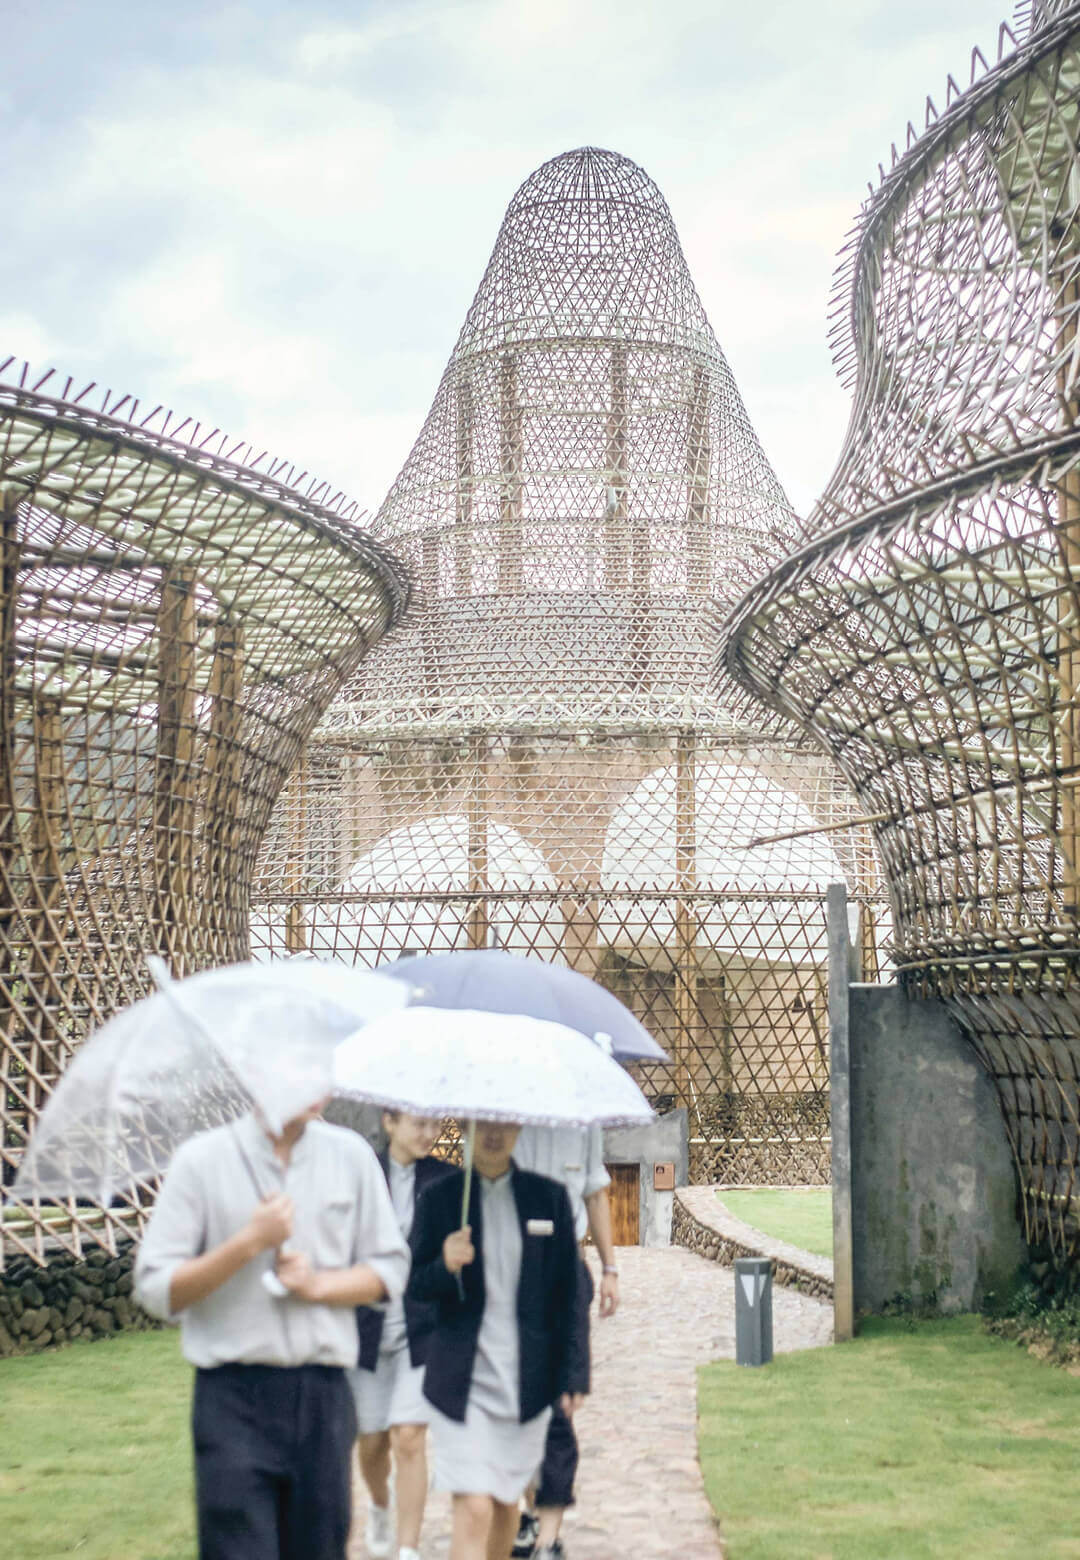 Anna Heringer, China Bamboo Hostels, Baoxi, China, 2016 (Planet Matters, Vienna Biennale for Change 2021)   Vienna Biennale for Change 2021   STIRworld